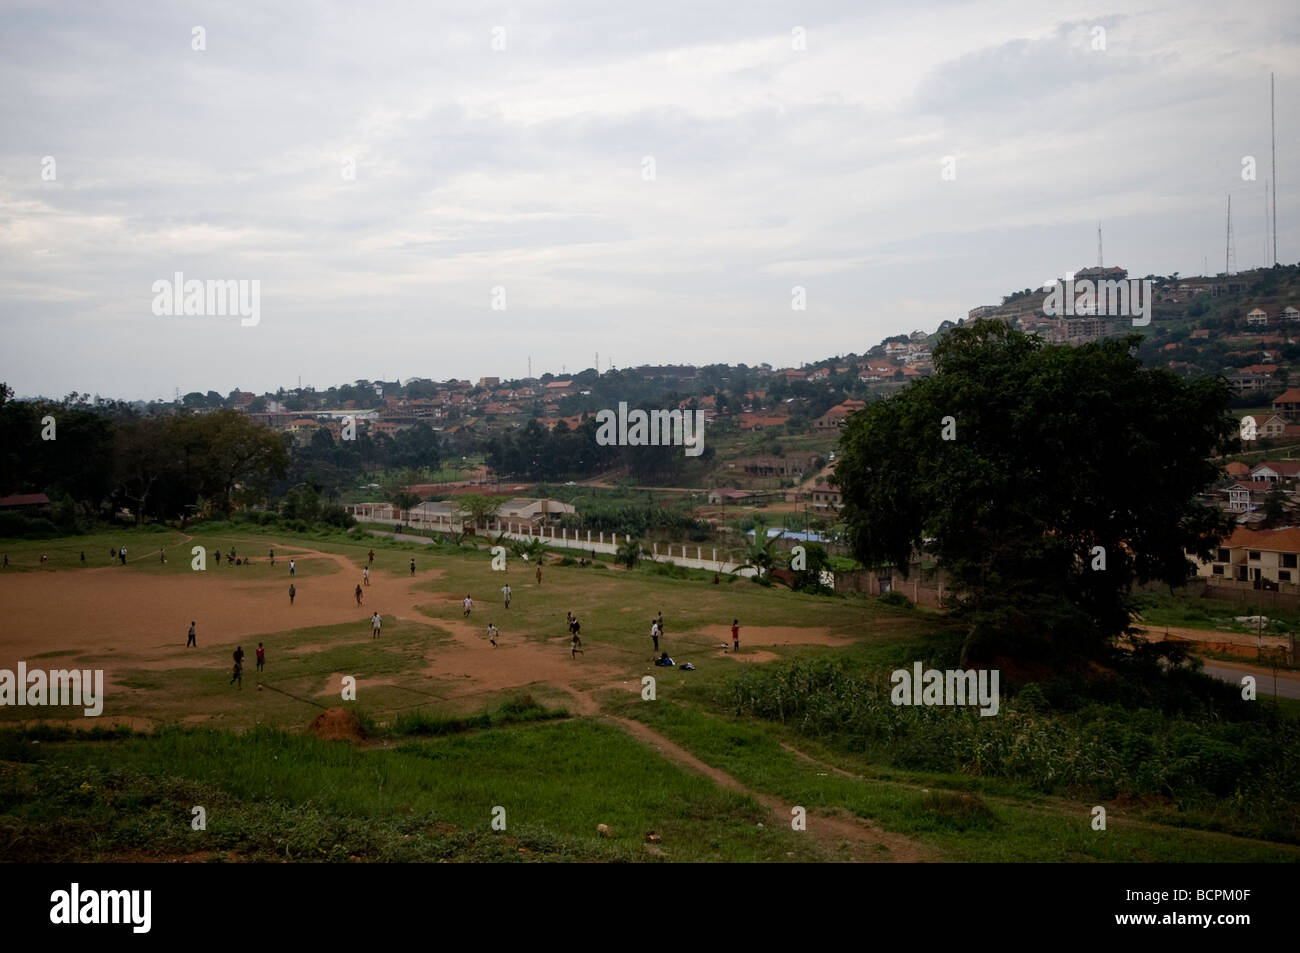 School playing fields on overcast day - Stock Image